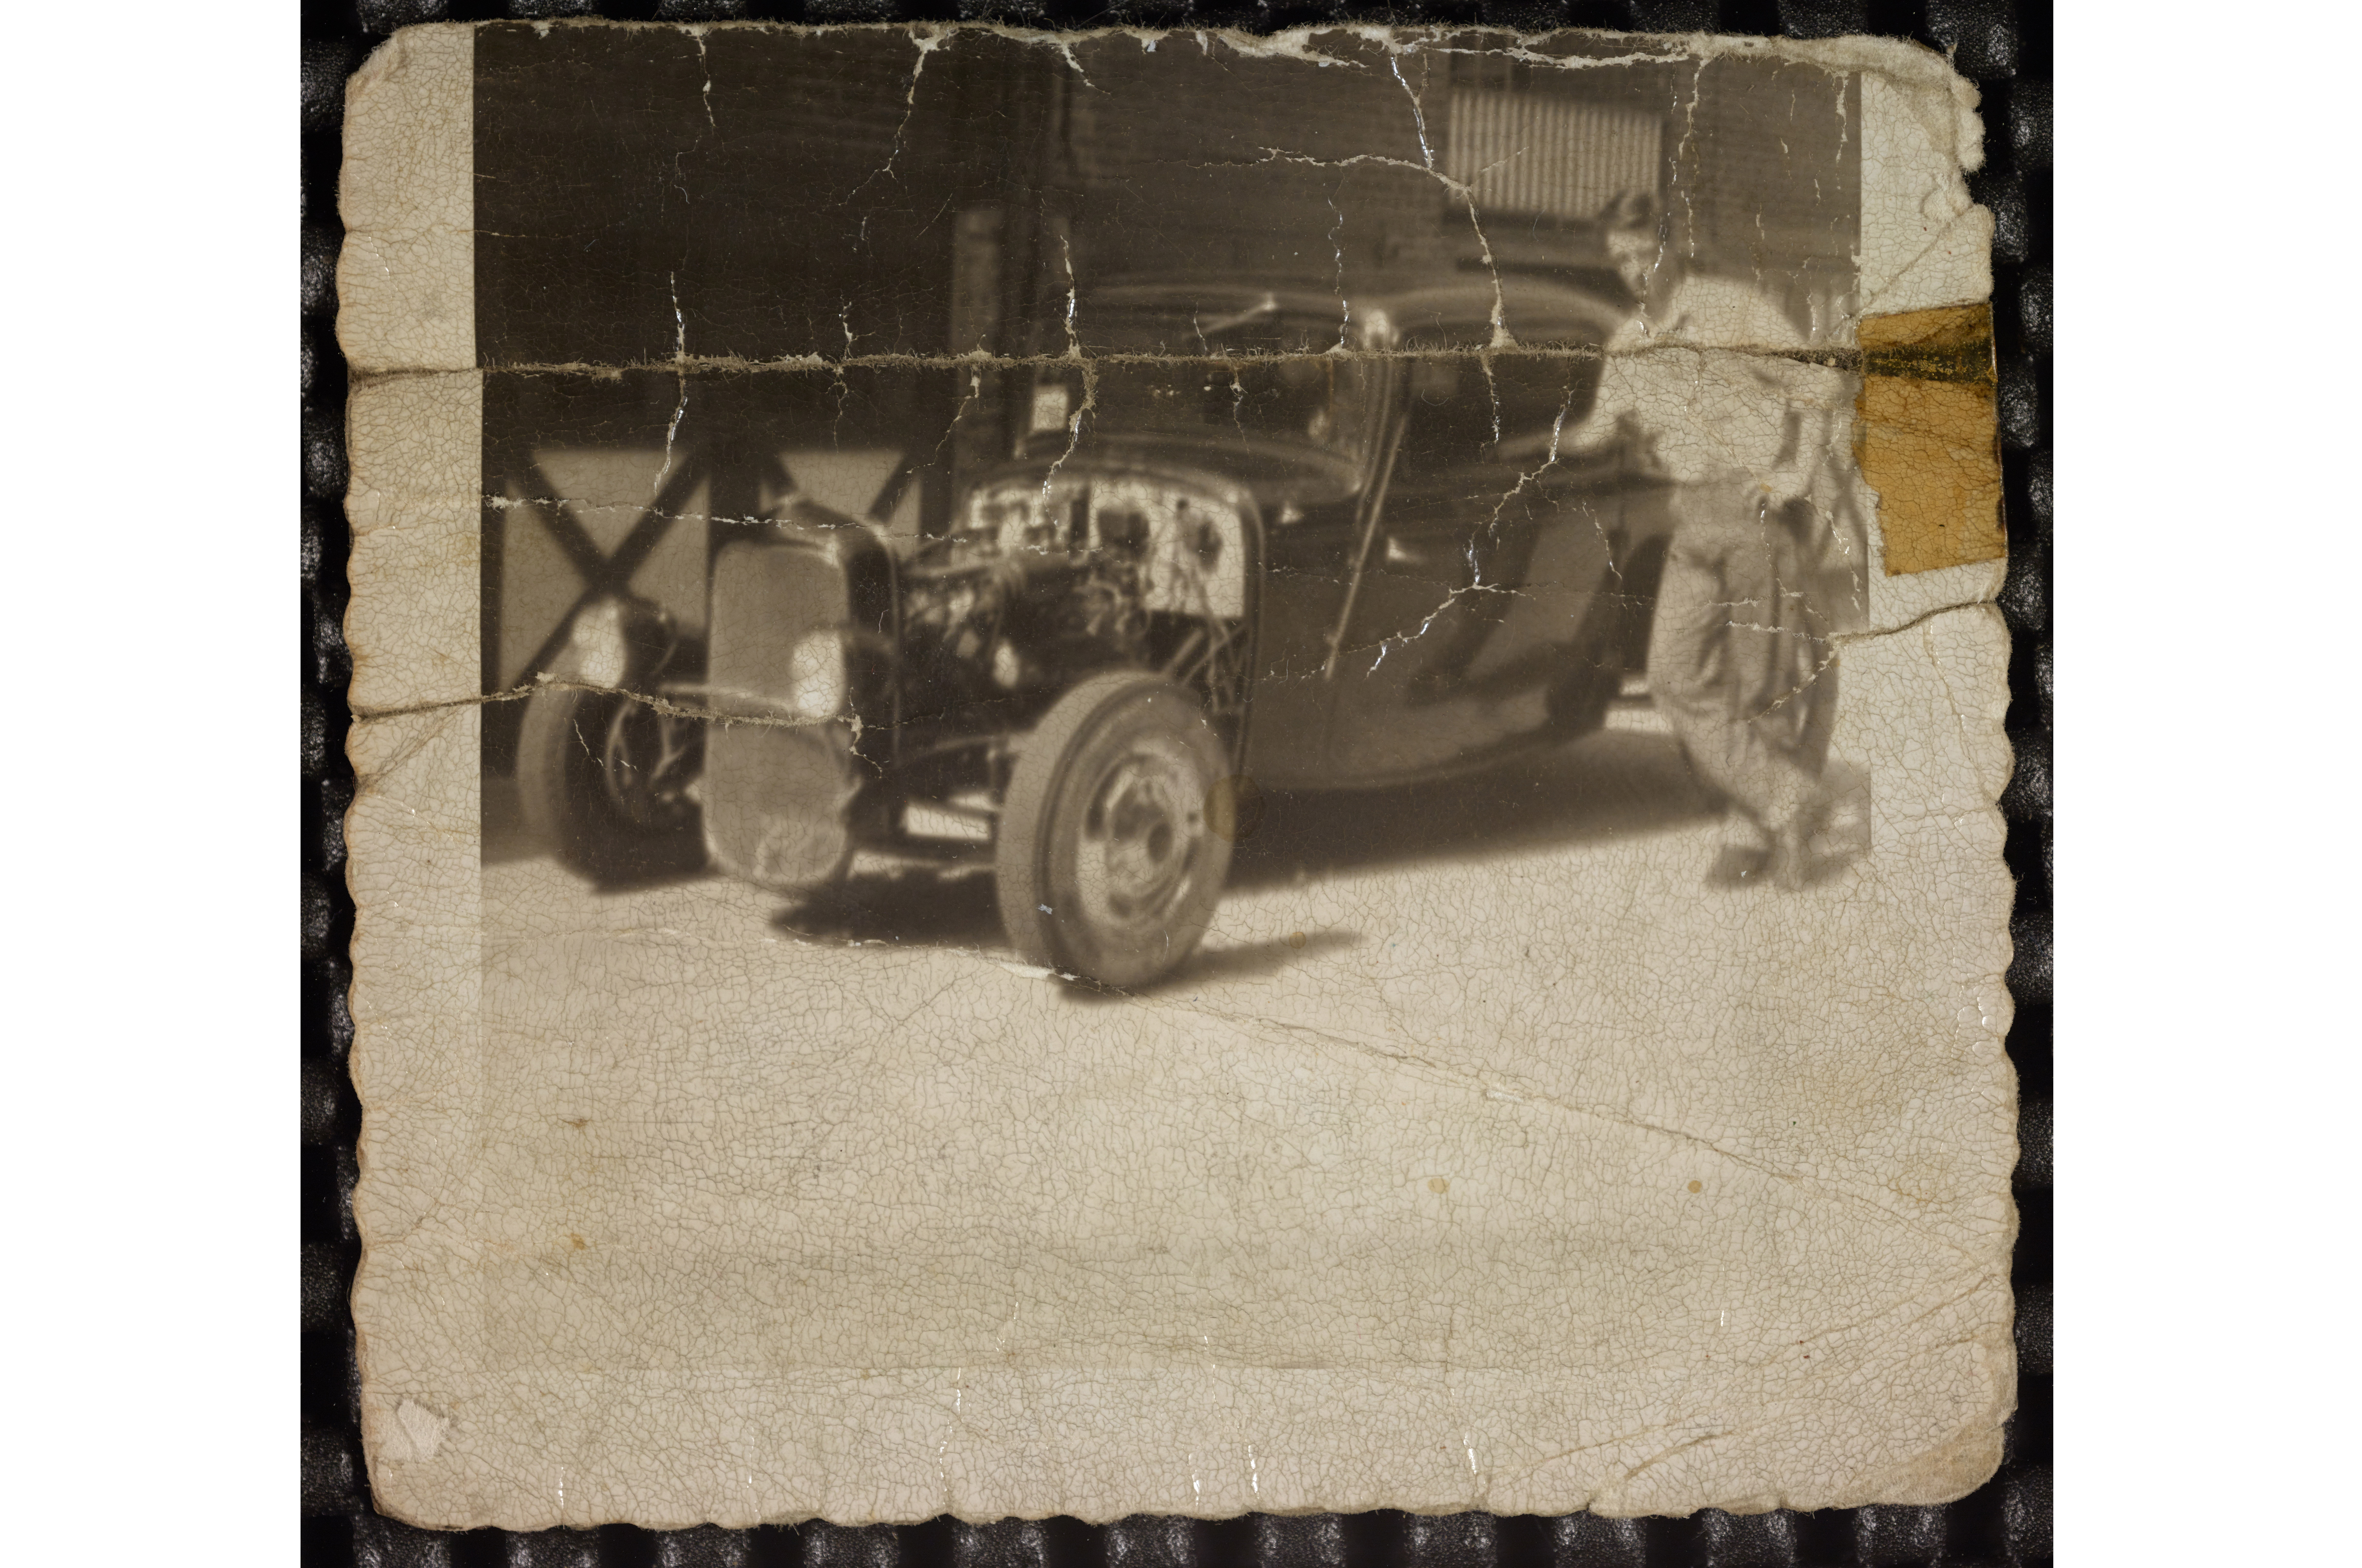 This is the photo of Kelly's coupe that Bob Kasner saw in its 2013 eBay auction. The photo is undated, but the black paint and what looks like a flathead between the framerails would mean it was likely taken in the late '40s or very early '50s.